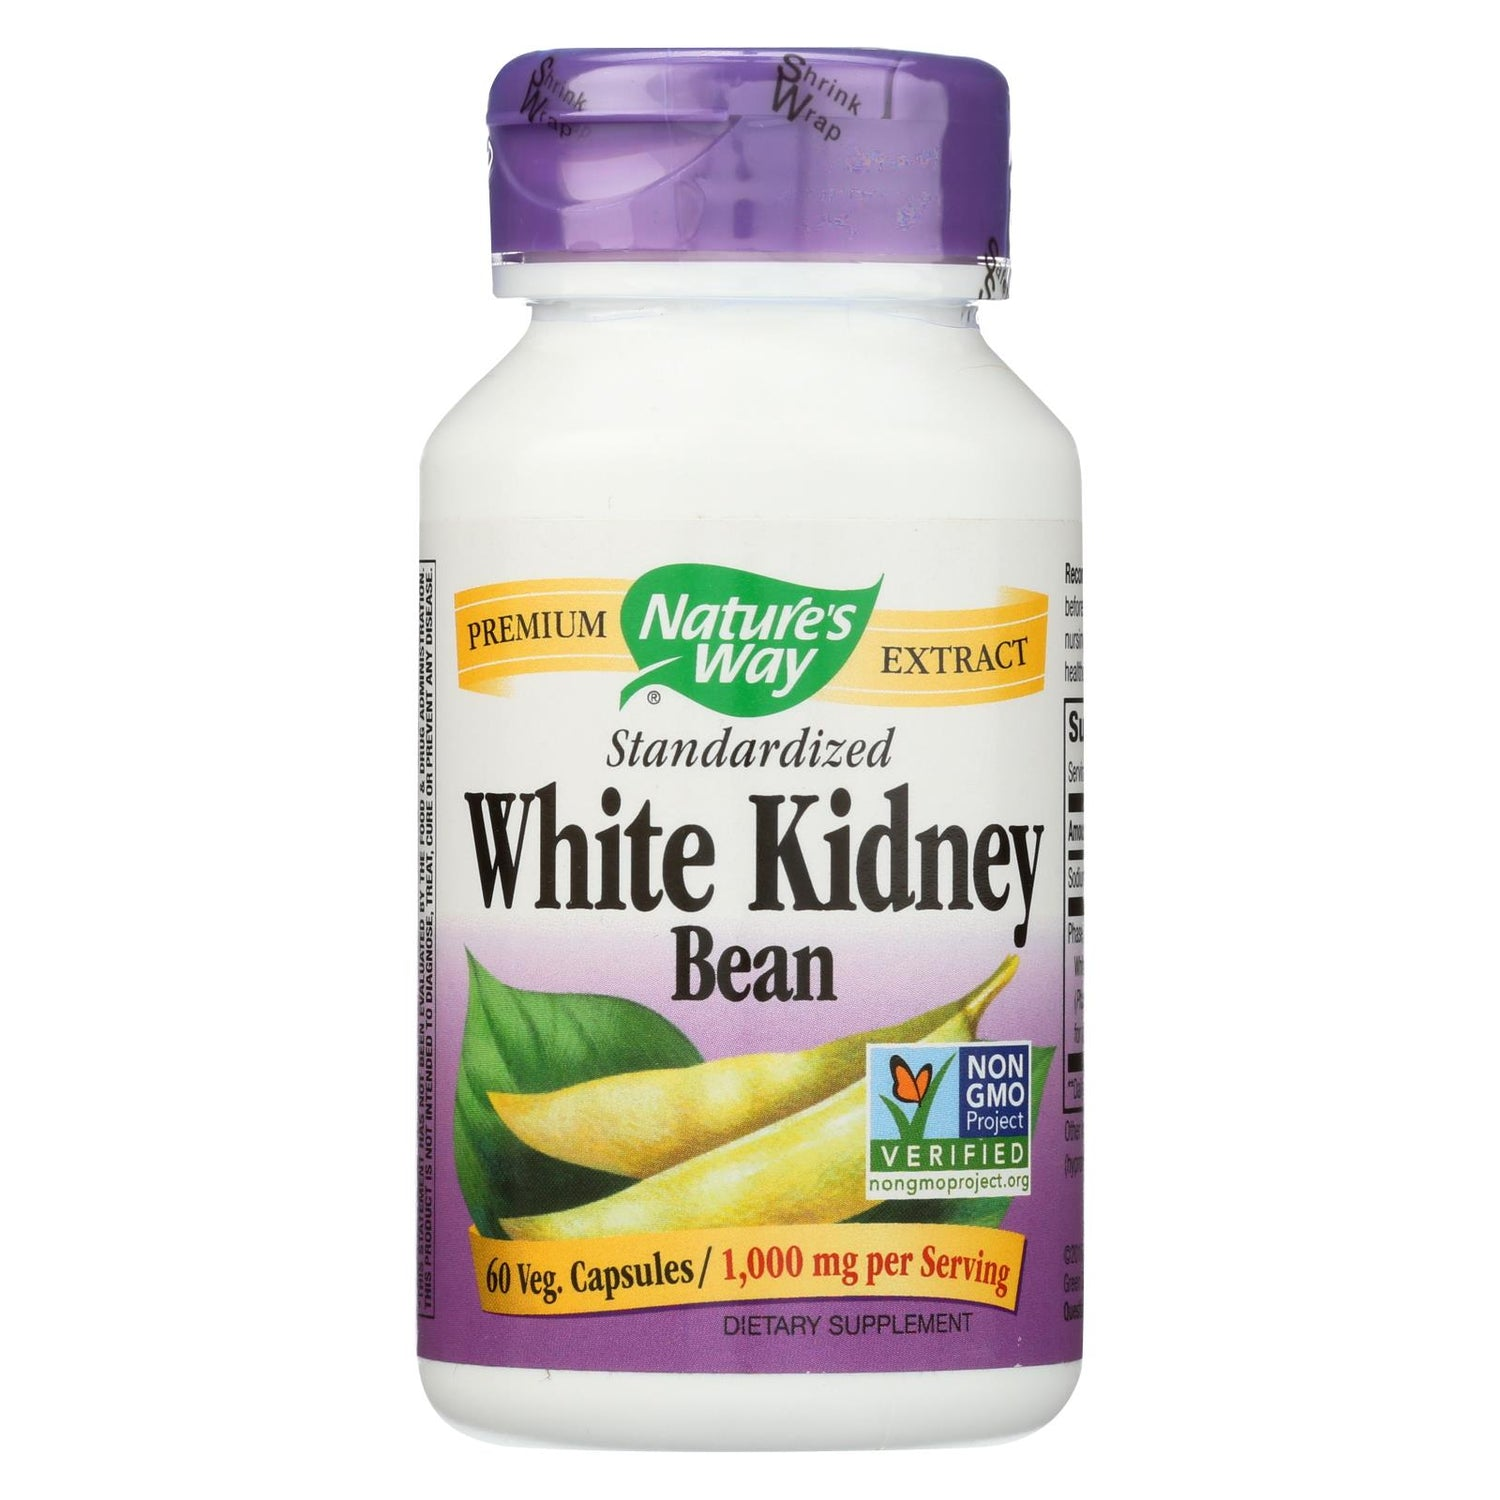 Natures Way White Kidney Bean - 60 Vegetarian Capsules